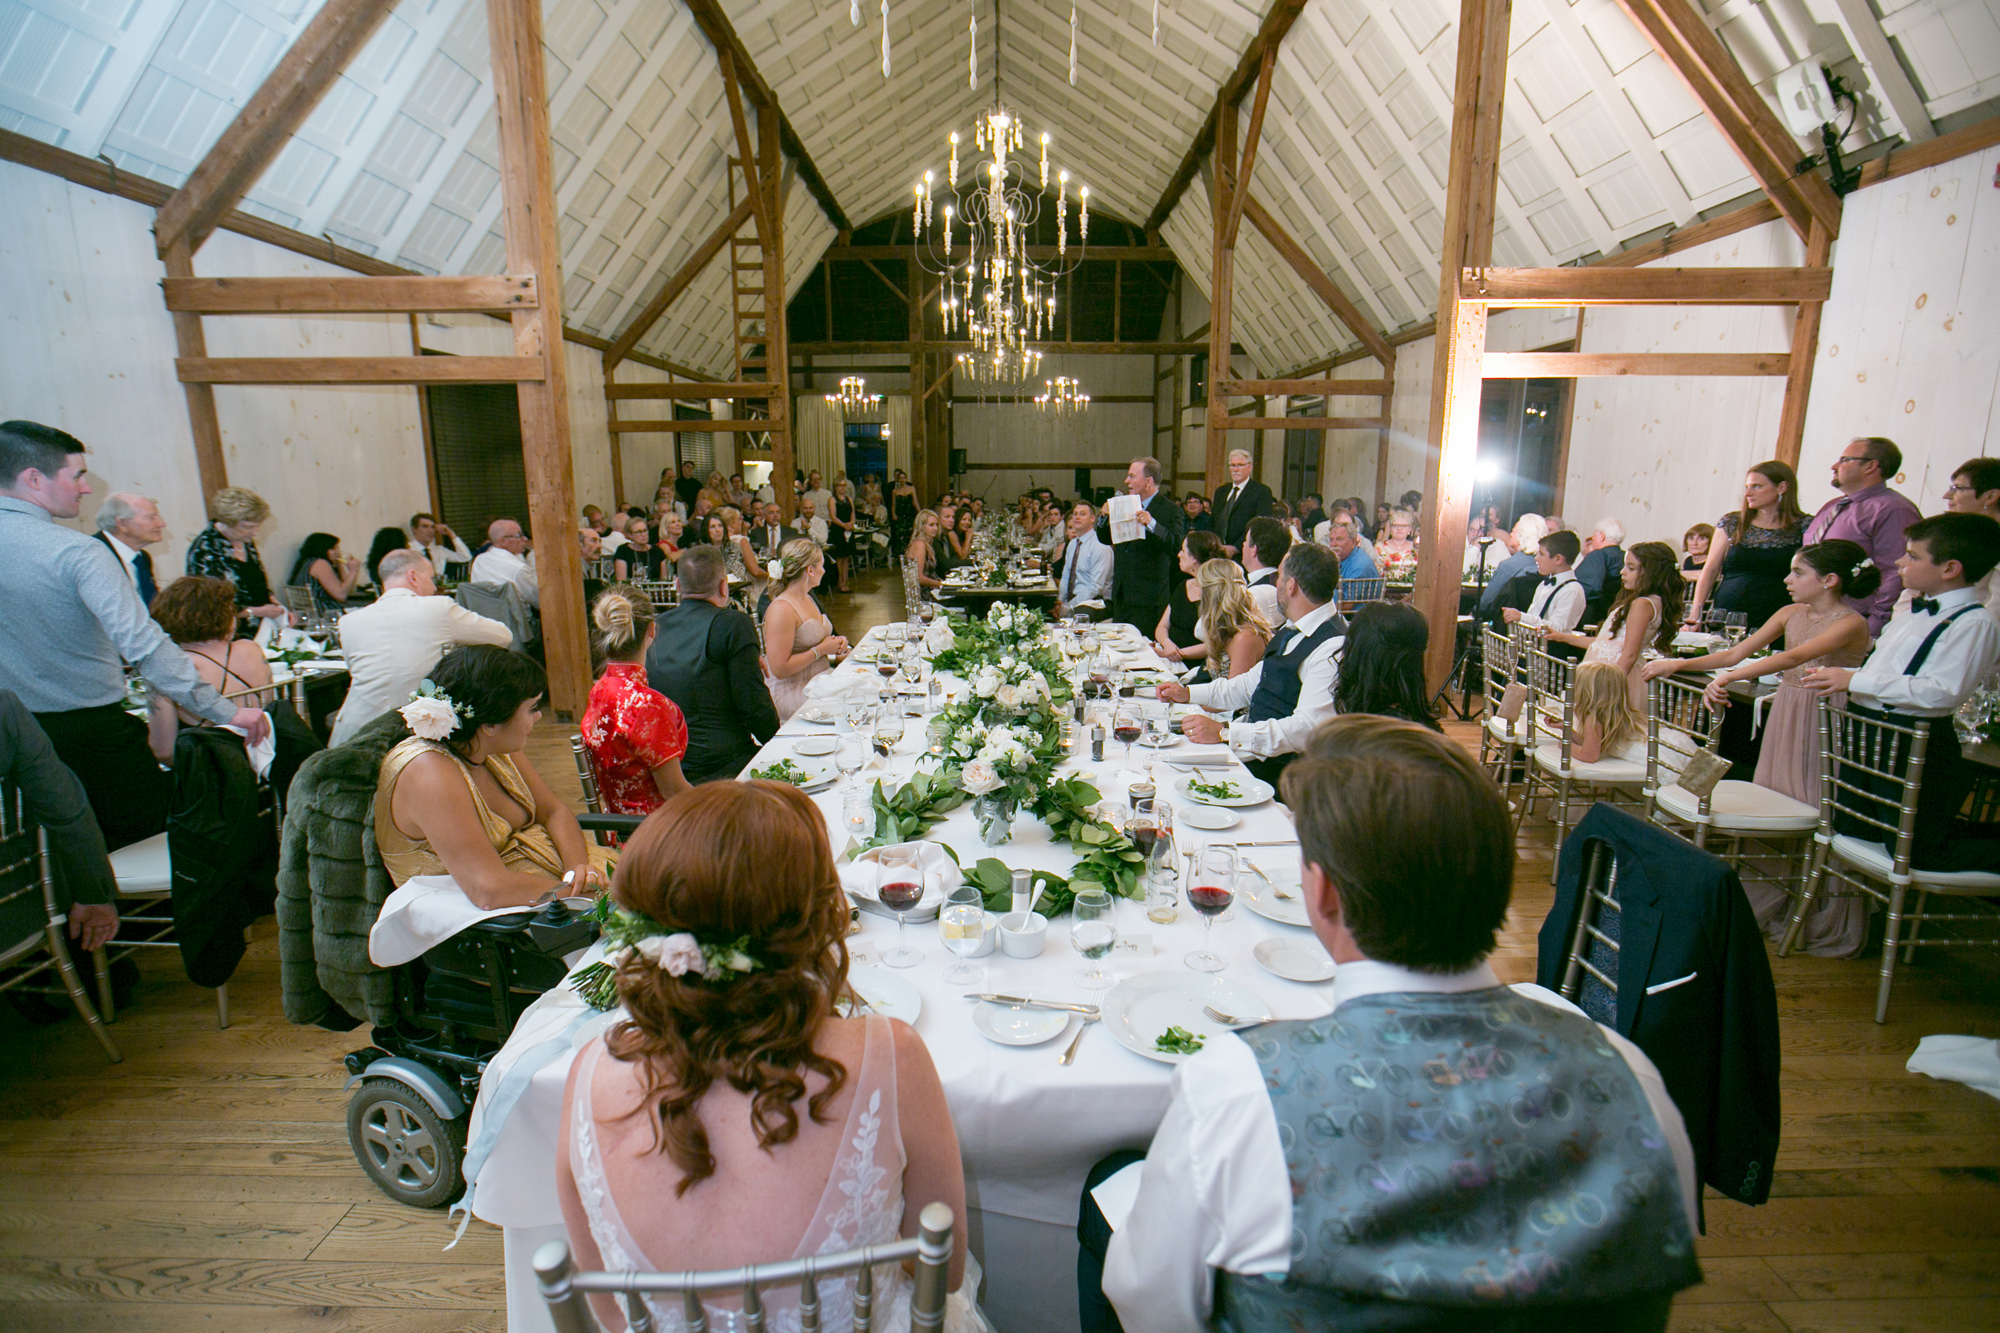 294-earth-to-table-farm-wedding.jpg